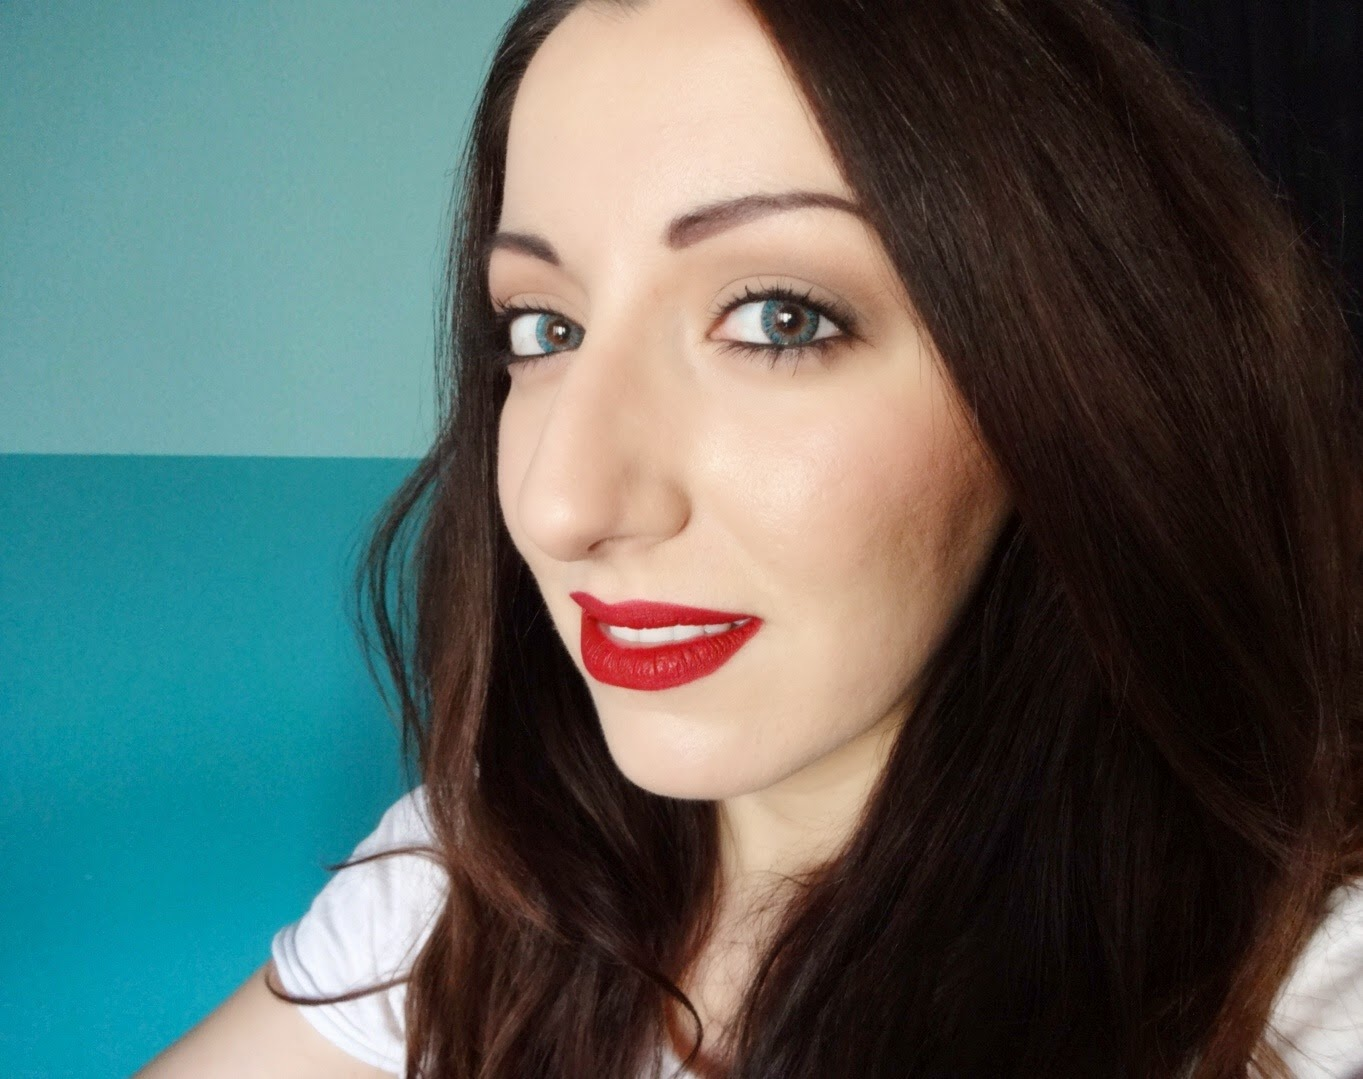 nars velvet matt lip pencil cruella swatch, prodotti preferiti make up, rossetto rosso, beauty blogger